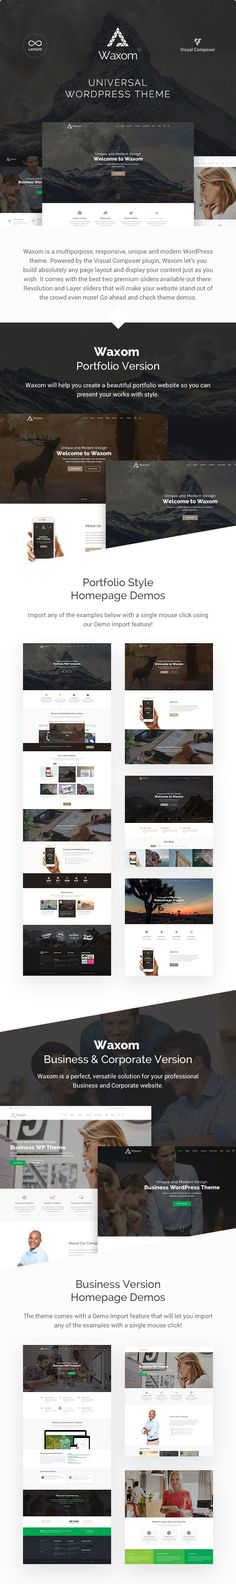 Waxom - Clean & Universal | Download: http://themeforest.net/item/waxom-clean-universal-wordpress-theme/13639831?ref=sinzo #WordPress #Theme - WordPress